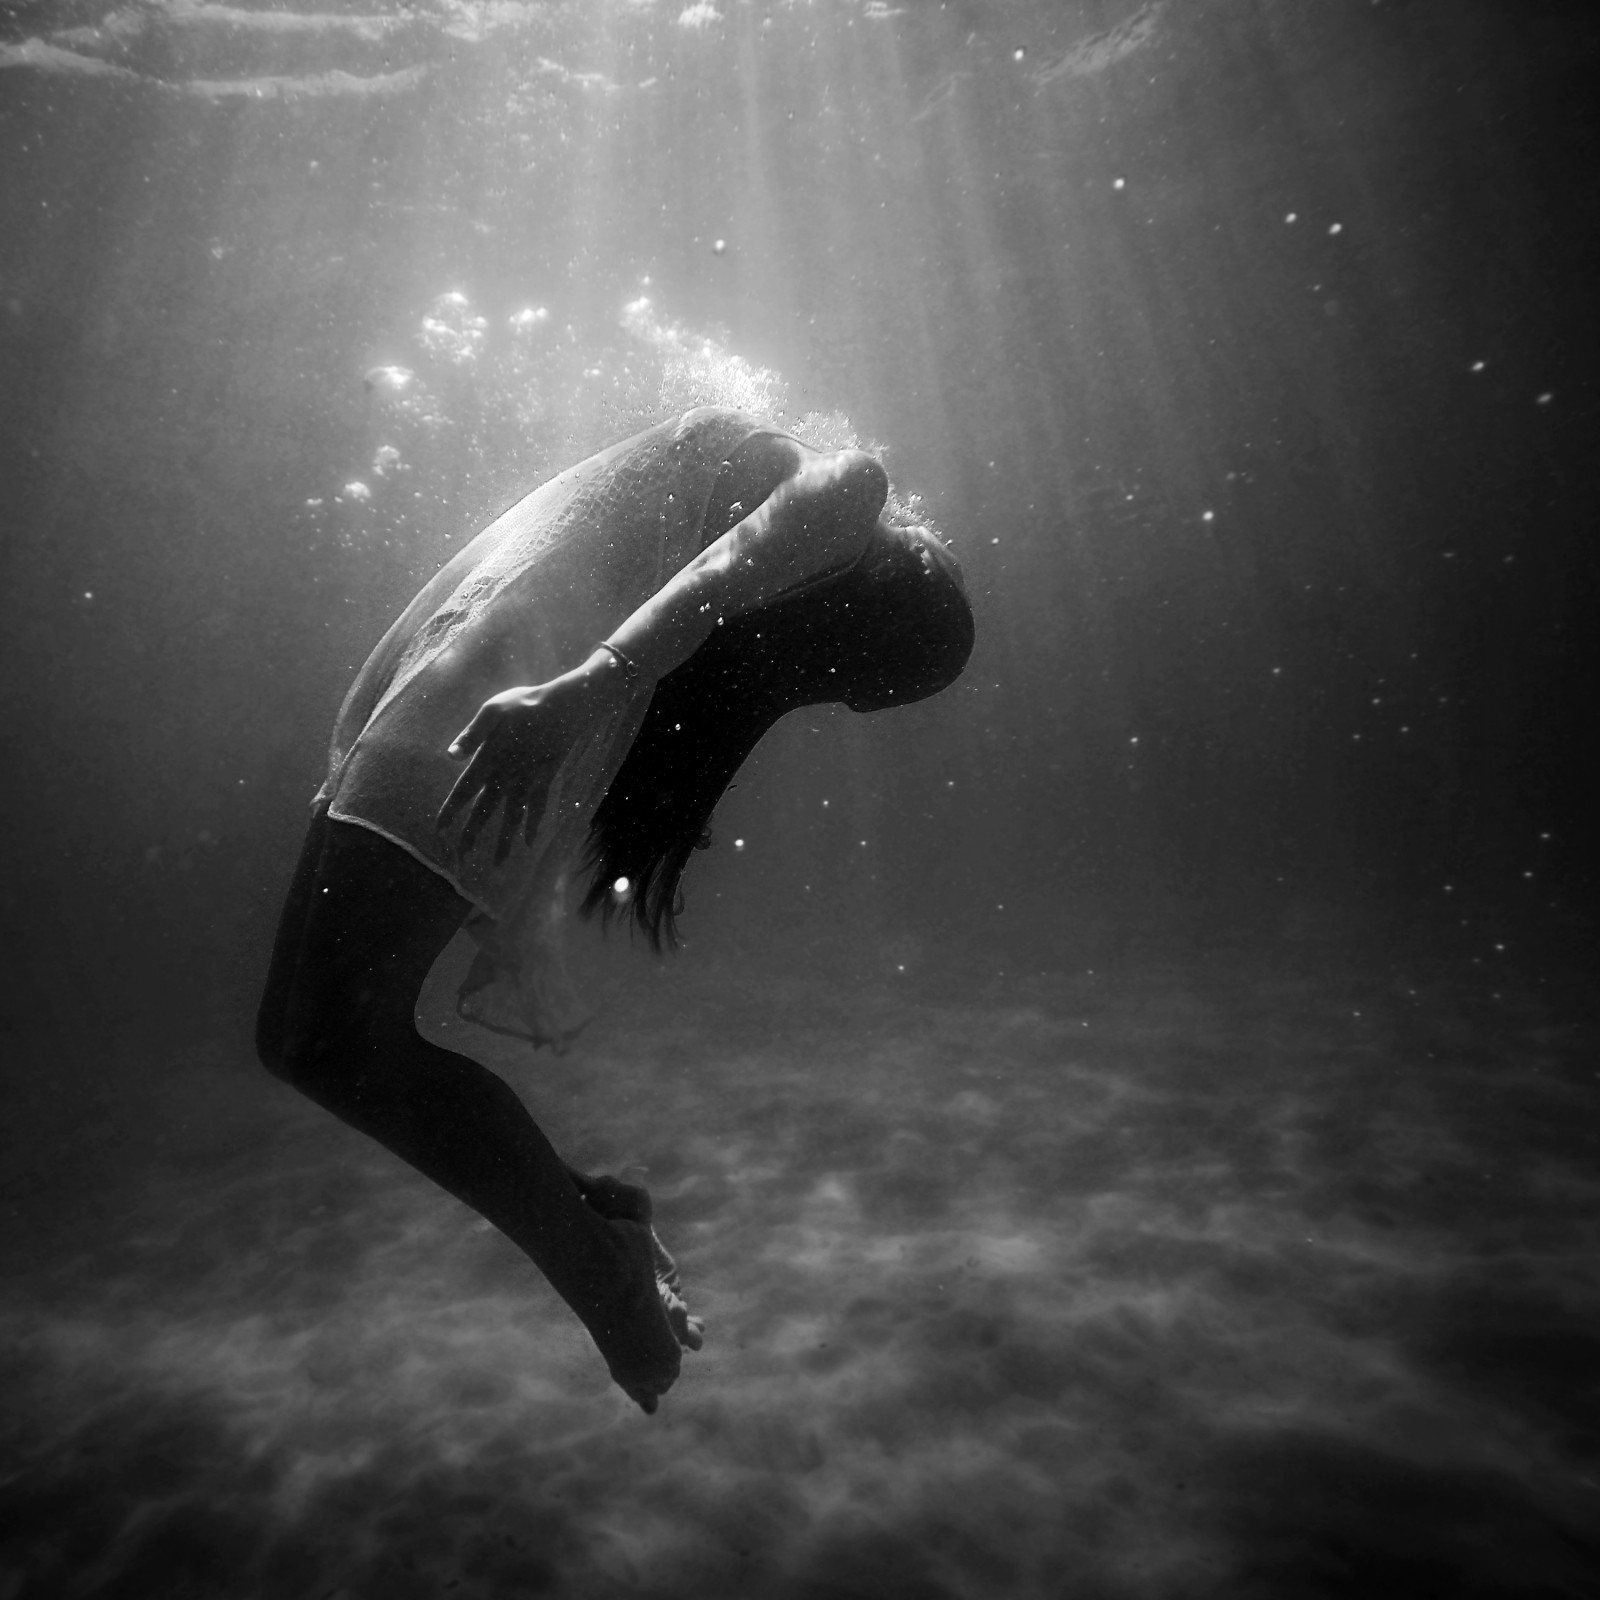 woman submerged in water